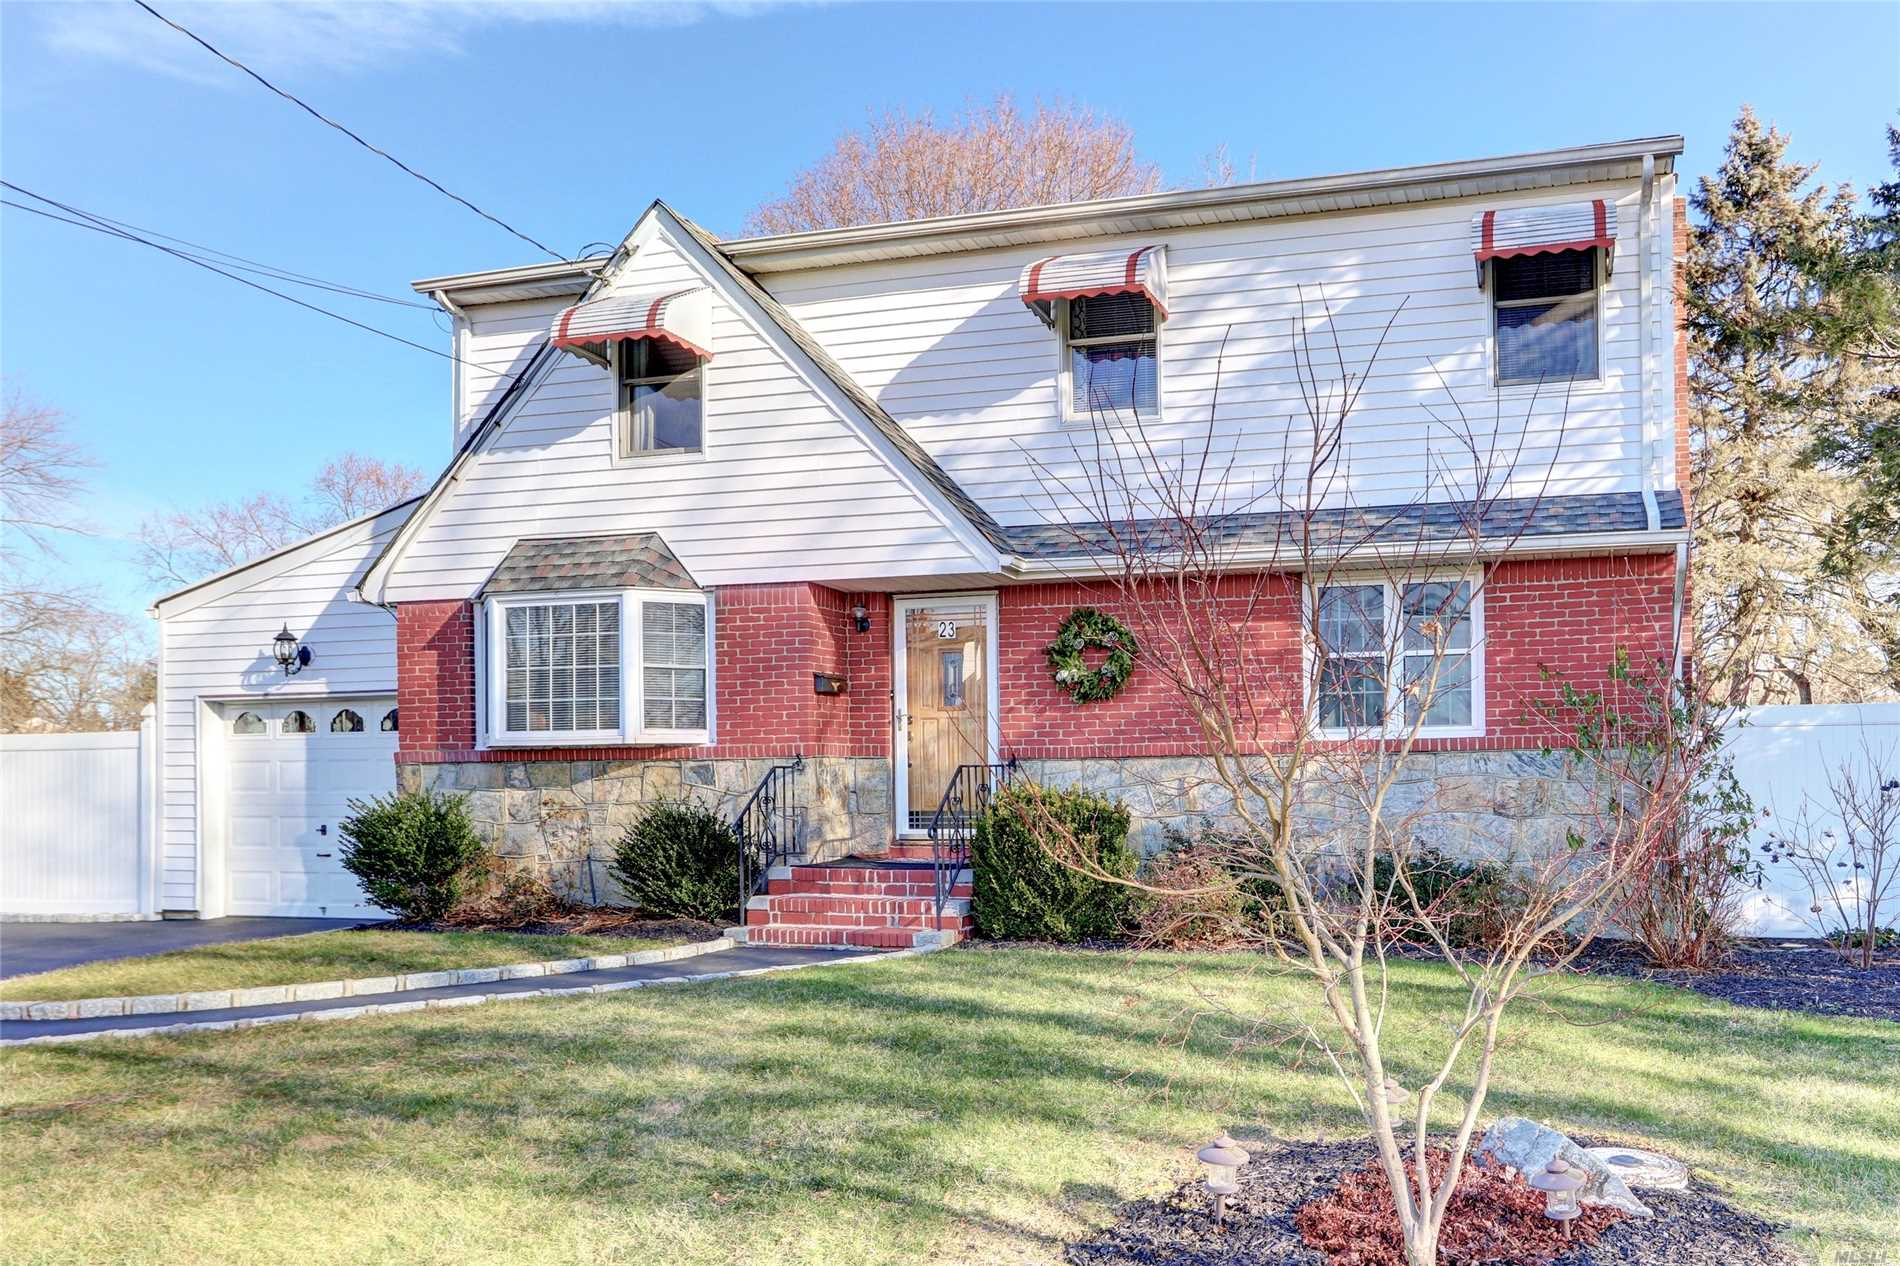 Wonderful Expanded Home In Award Winning Harborfields Sd!! Large Rooms Throughout. 3 Master-Size Bedrooms With Great Closet Space! Many Updates. Huge Basement. Flexible Layout, Can Be Made Into 4/5 Br Home If Needed. Beautiful Fenced In Flat Yard! Don't Miss This Spacious Home In A Special Neighborhood!!